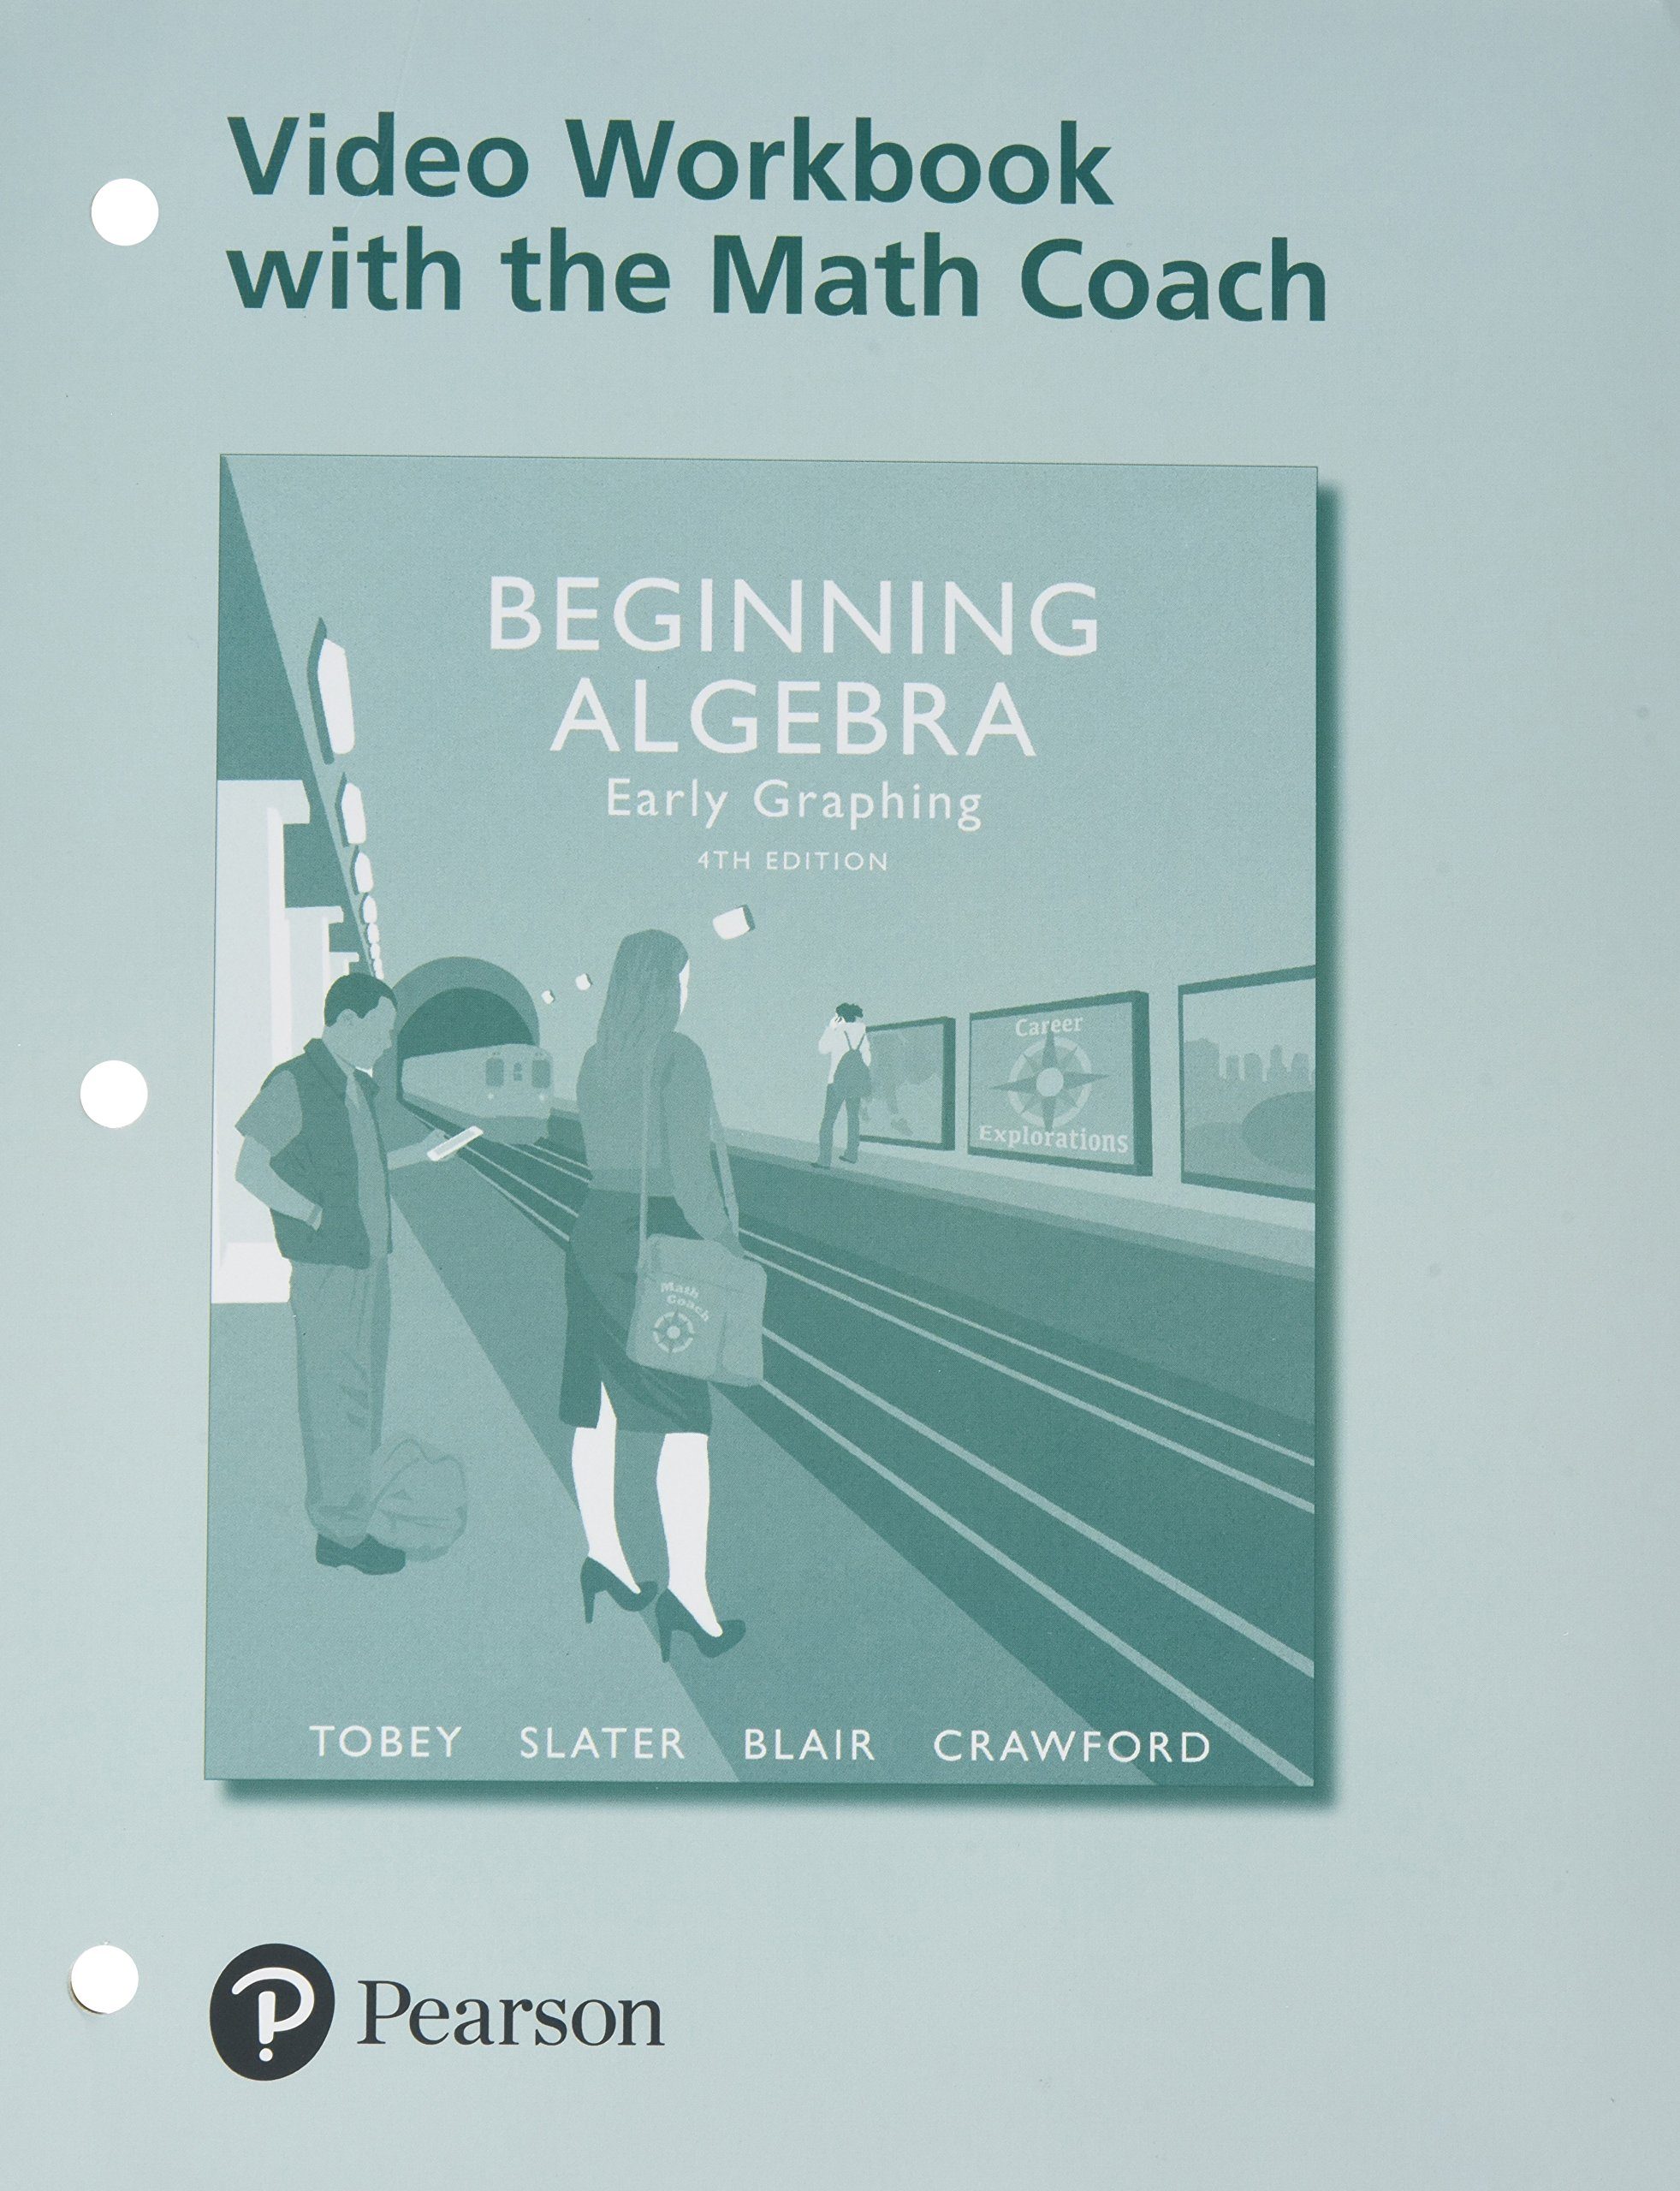 Beginning Algebra: Early Graphing PLUS Video Worksheets with the ...